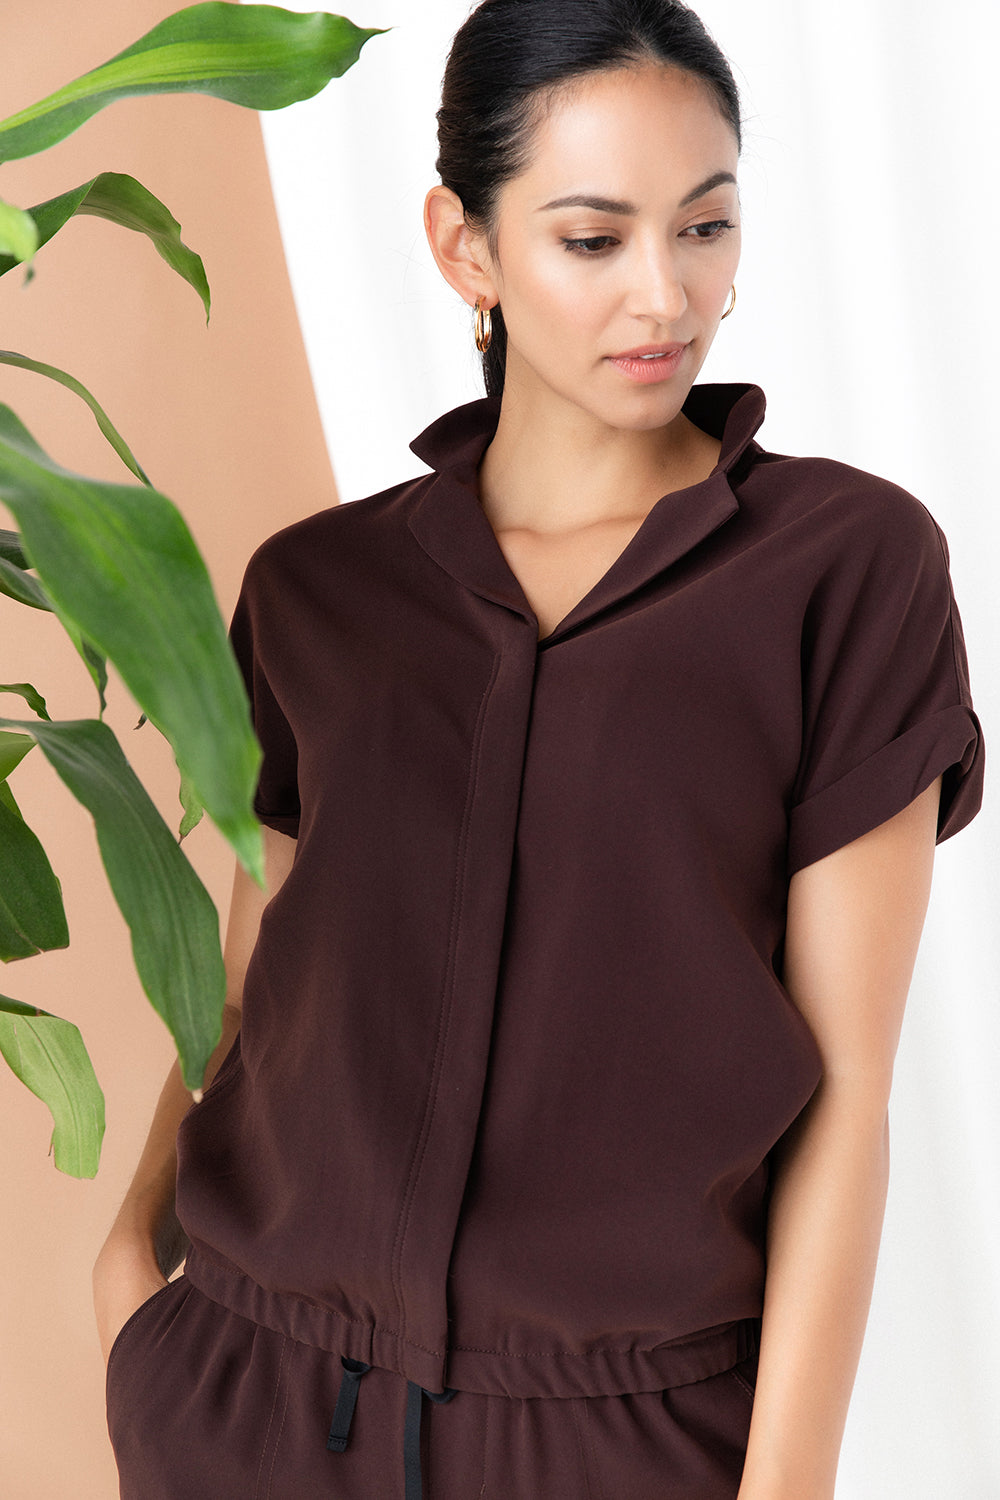 Blouson Shirt Jacket - Chocolate